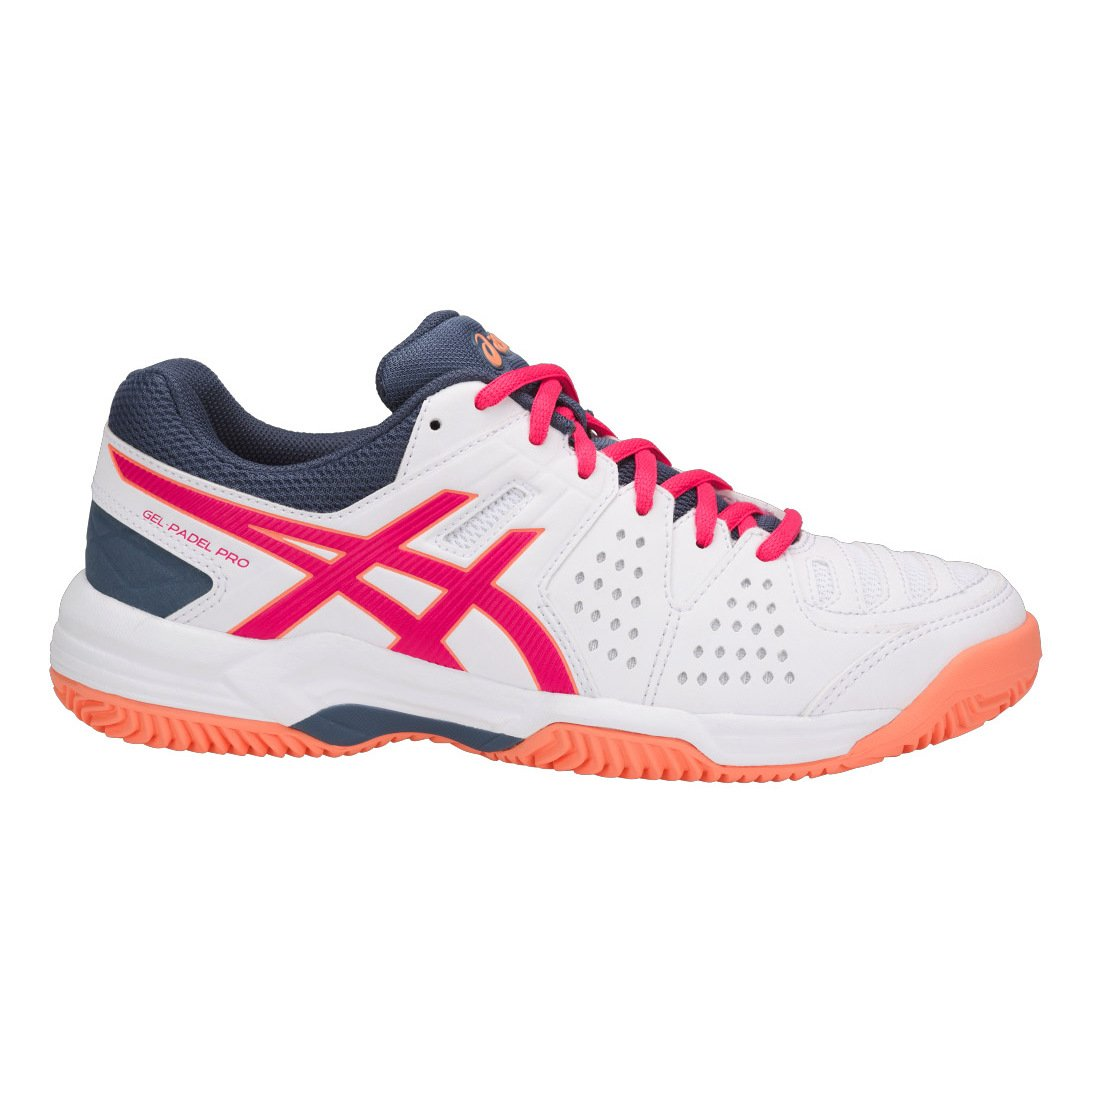 ZAPATILLA ASICS E561Y-0121 GEL-PADEL BLANCO (42 EU): Amazon.es ...